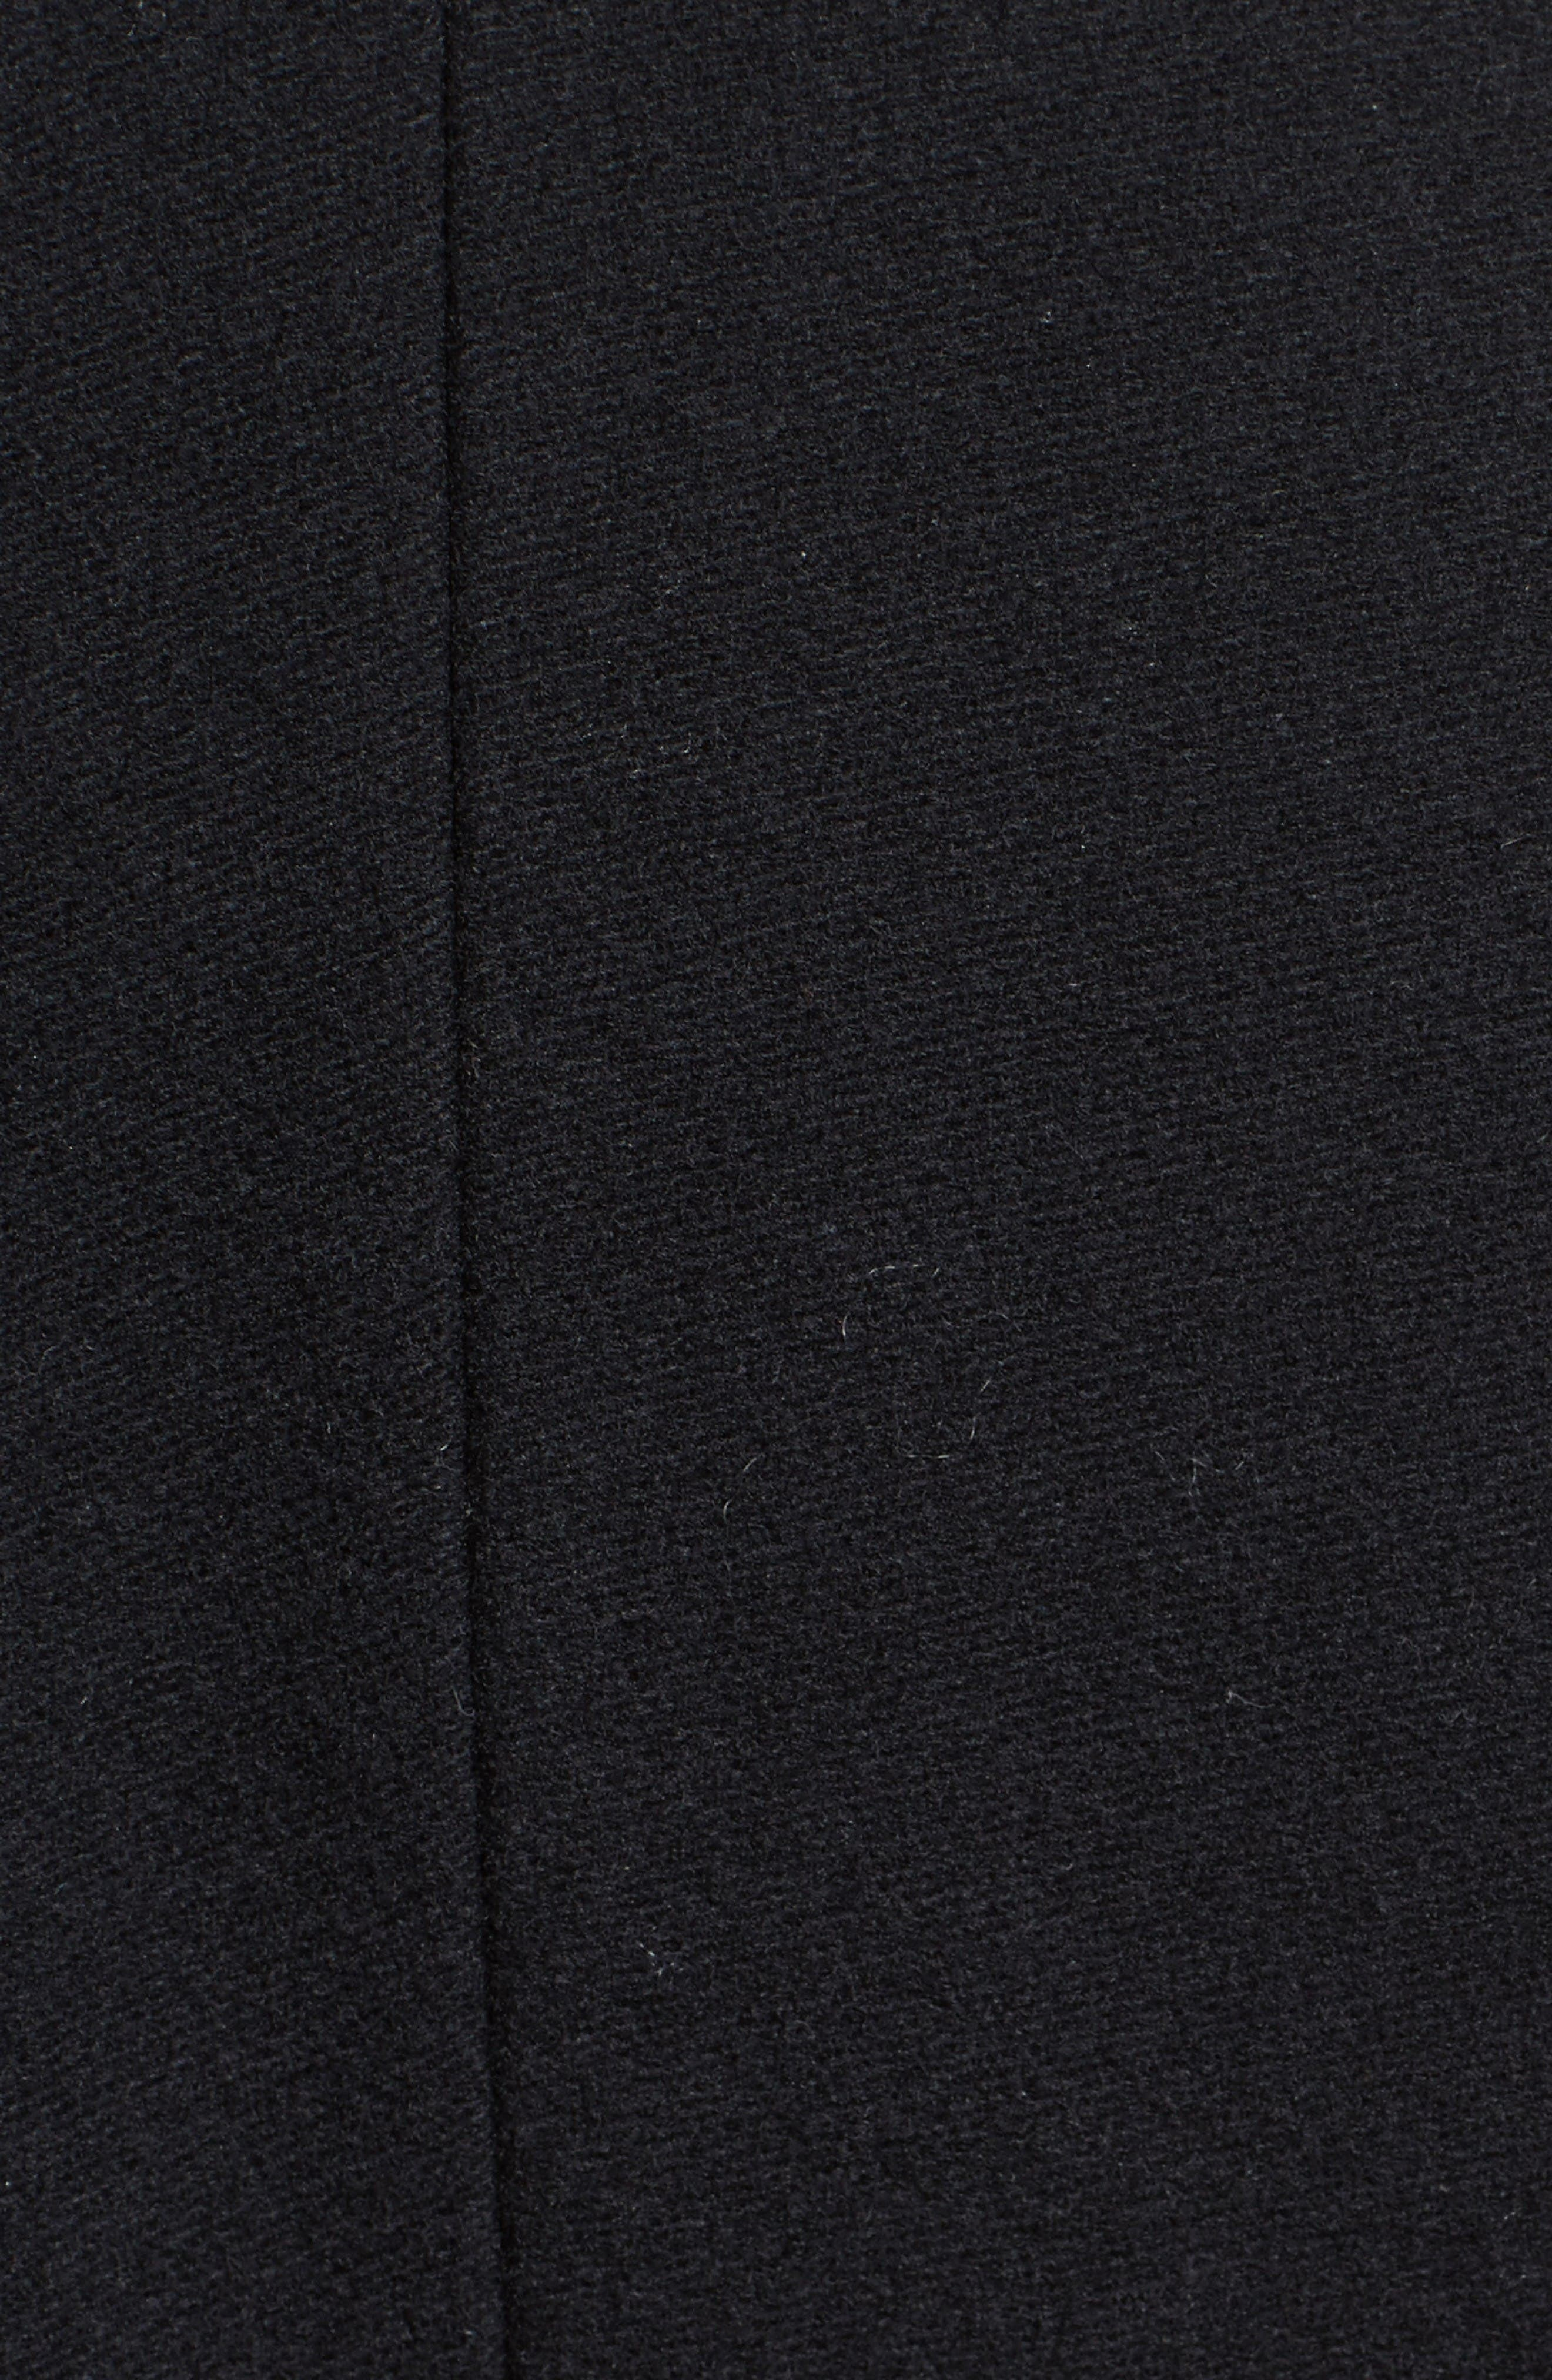 Alvingham Wool Blend Jacket,                             Alternate thumbnail 3, color,                             Black